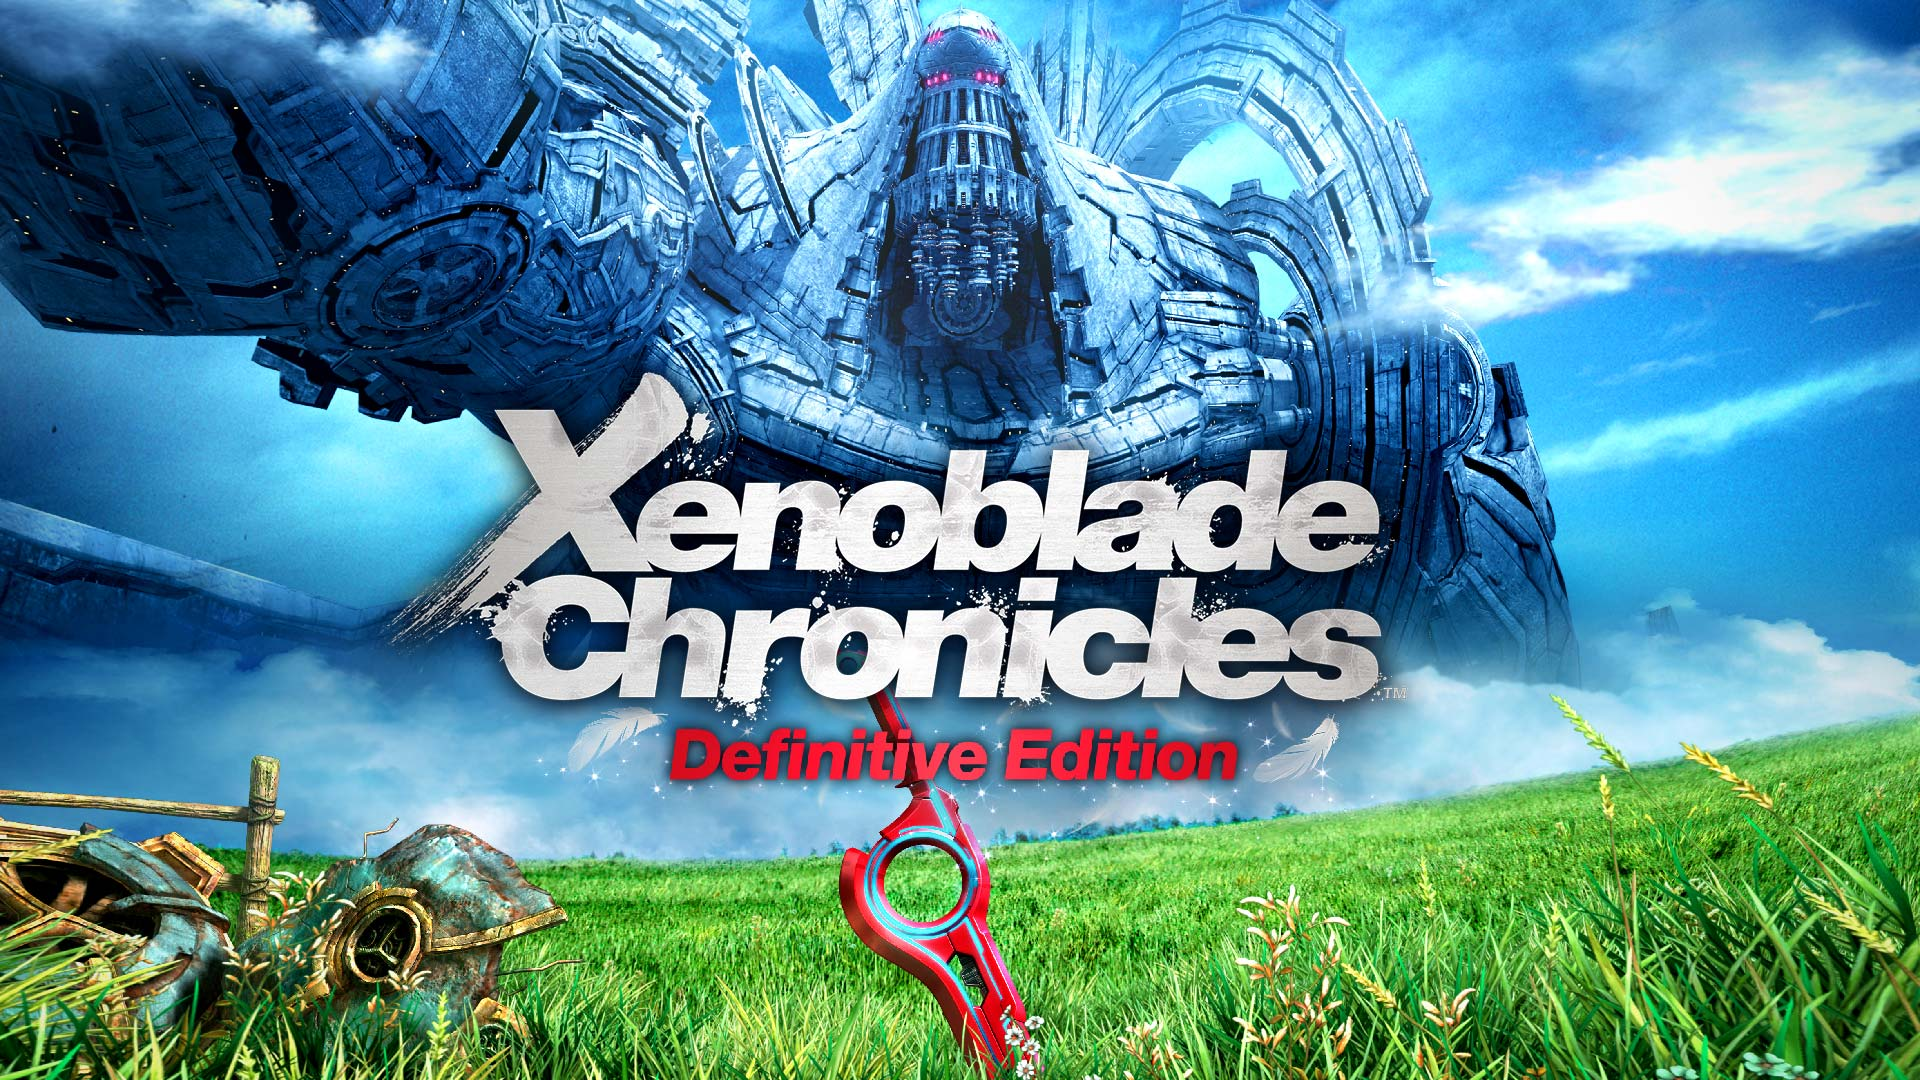 xenoblade chronicles, affinity